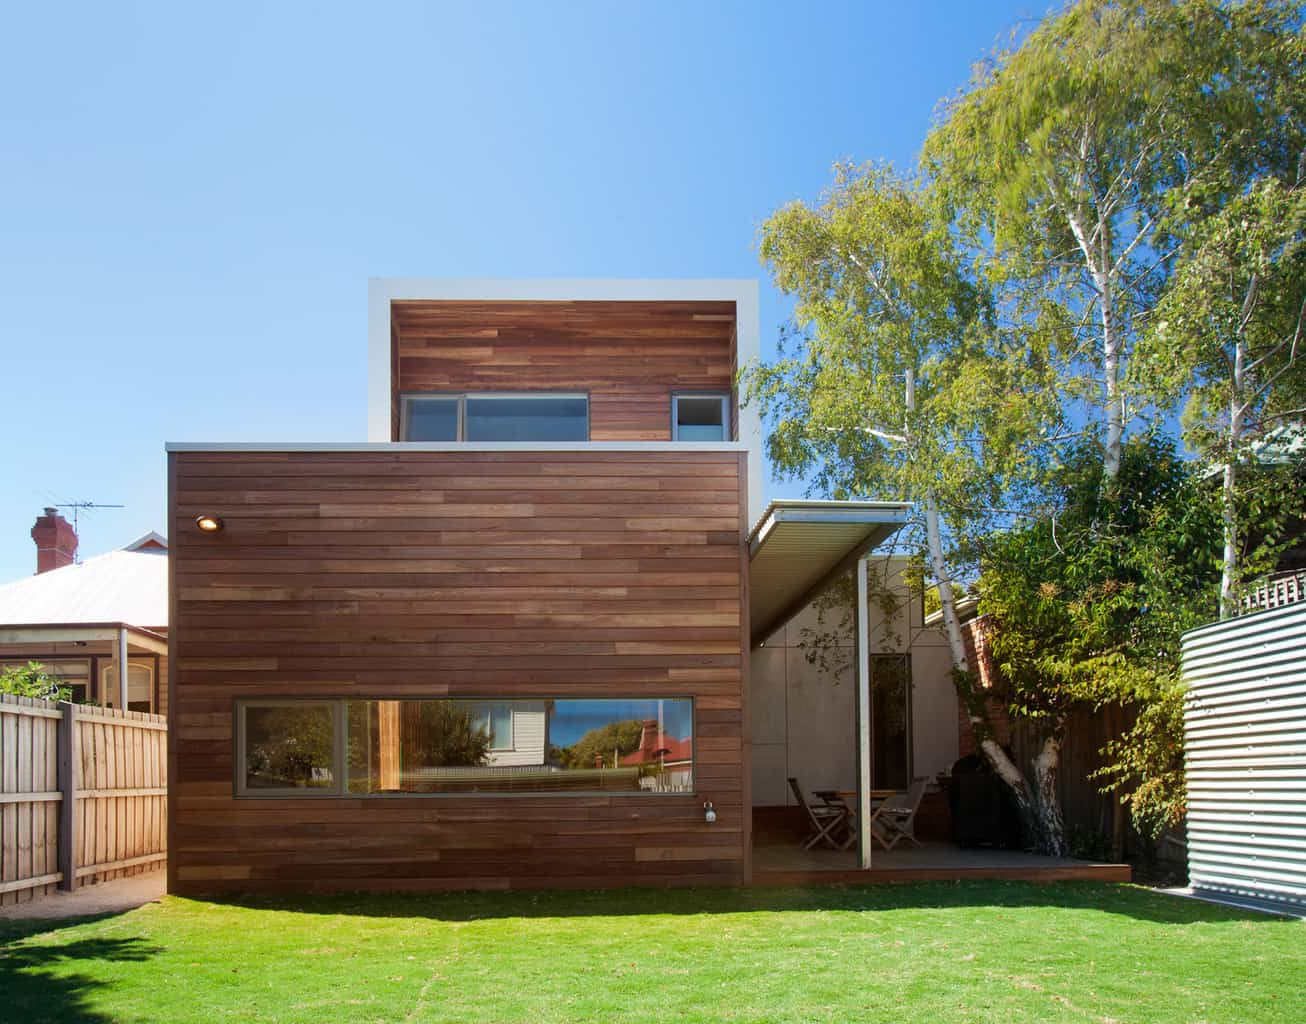 2012 Houses Awards: Jack and Jill house